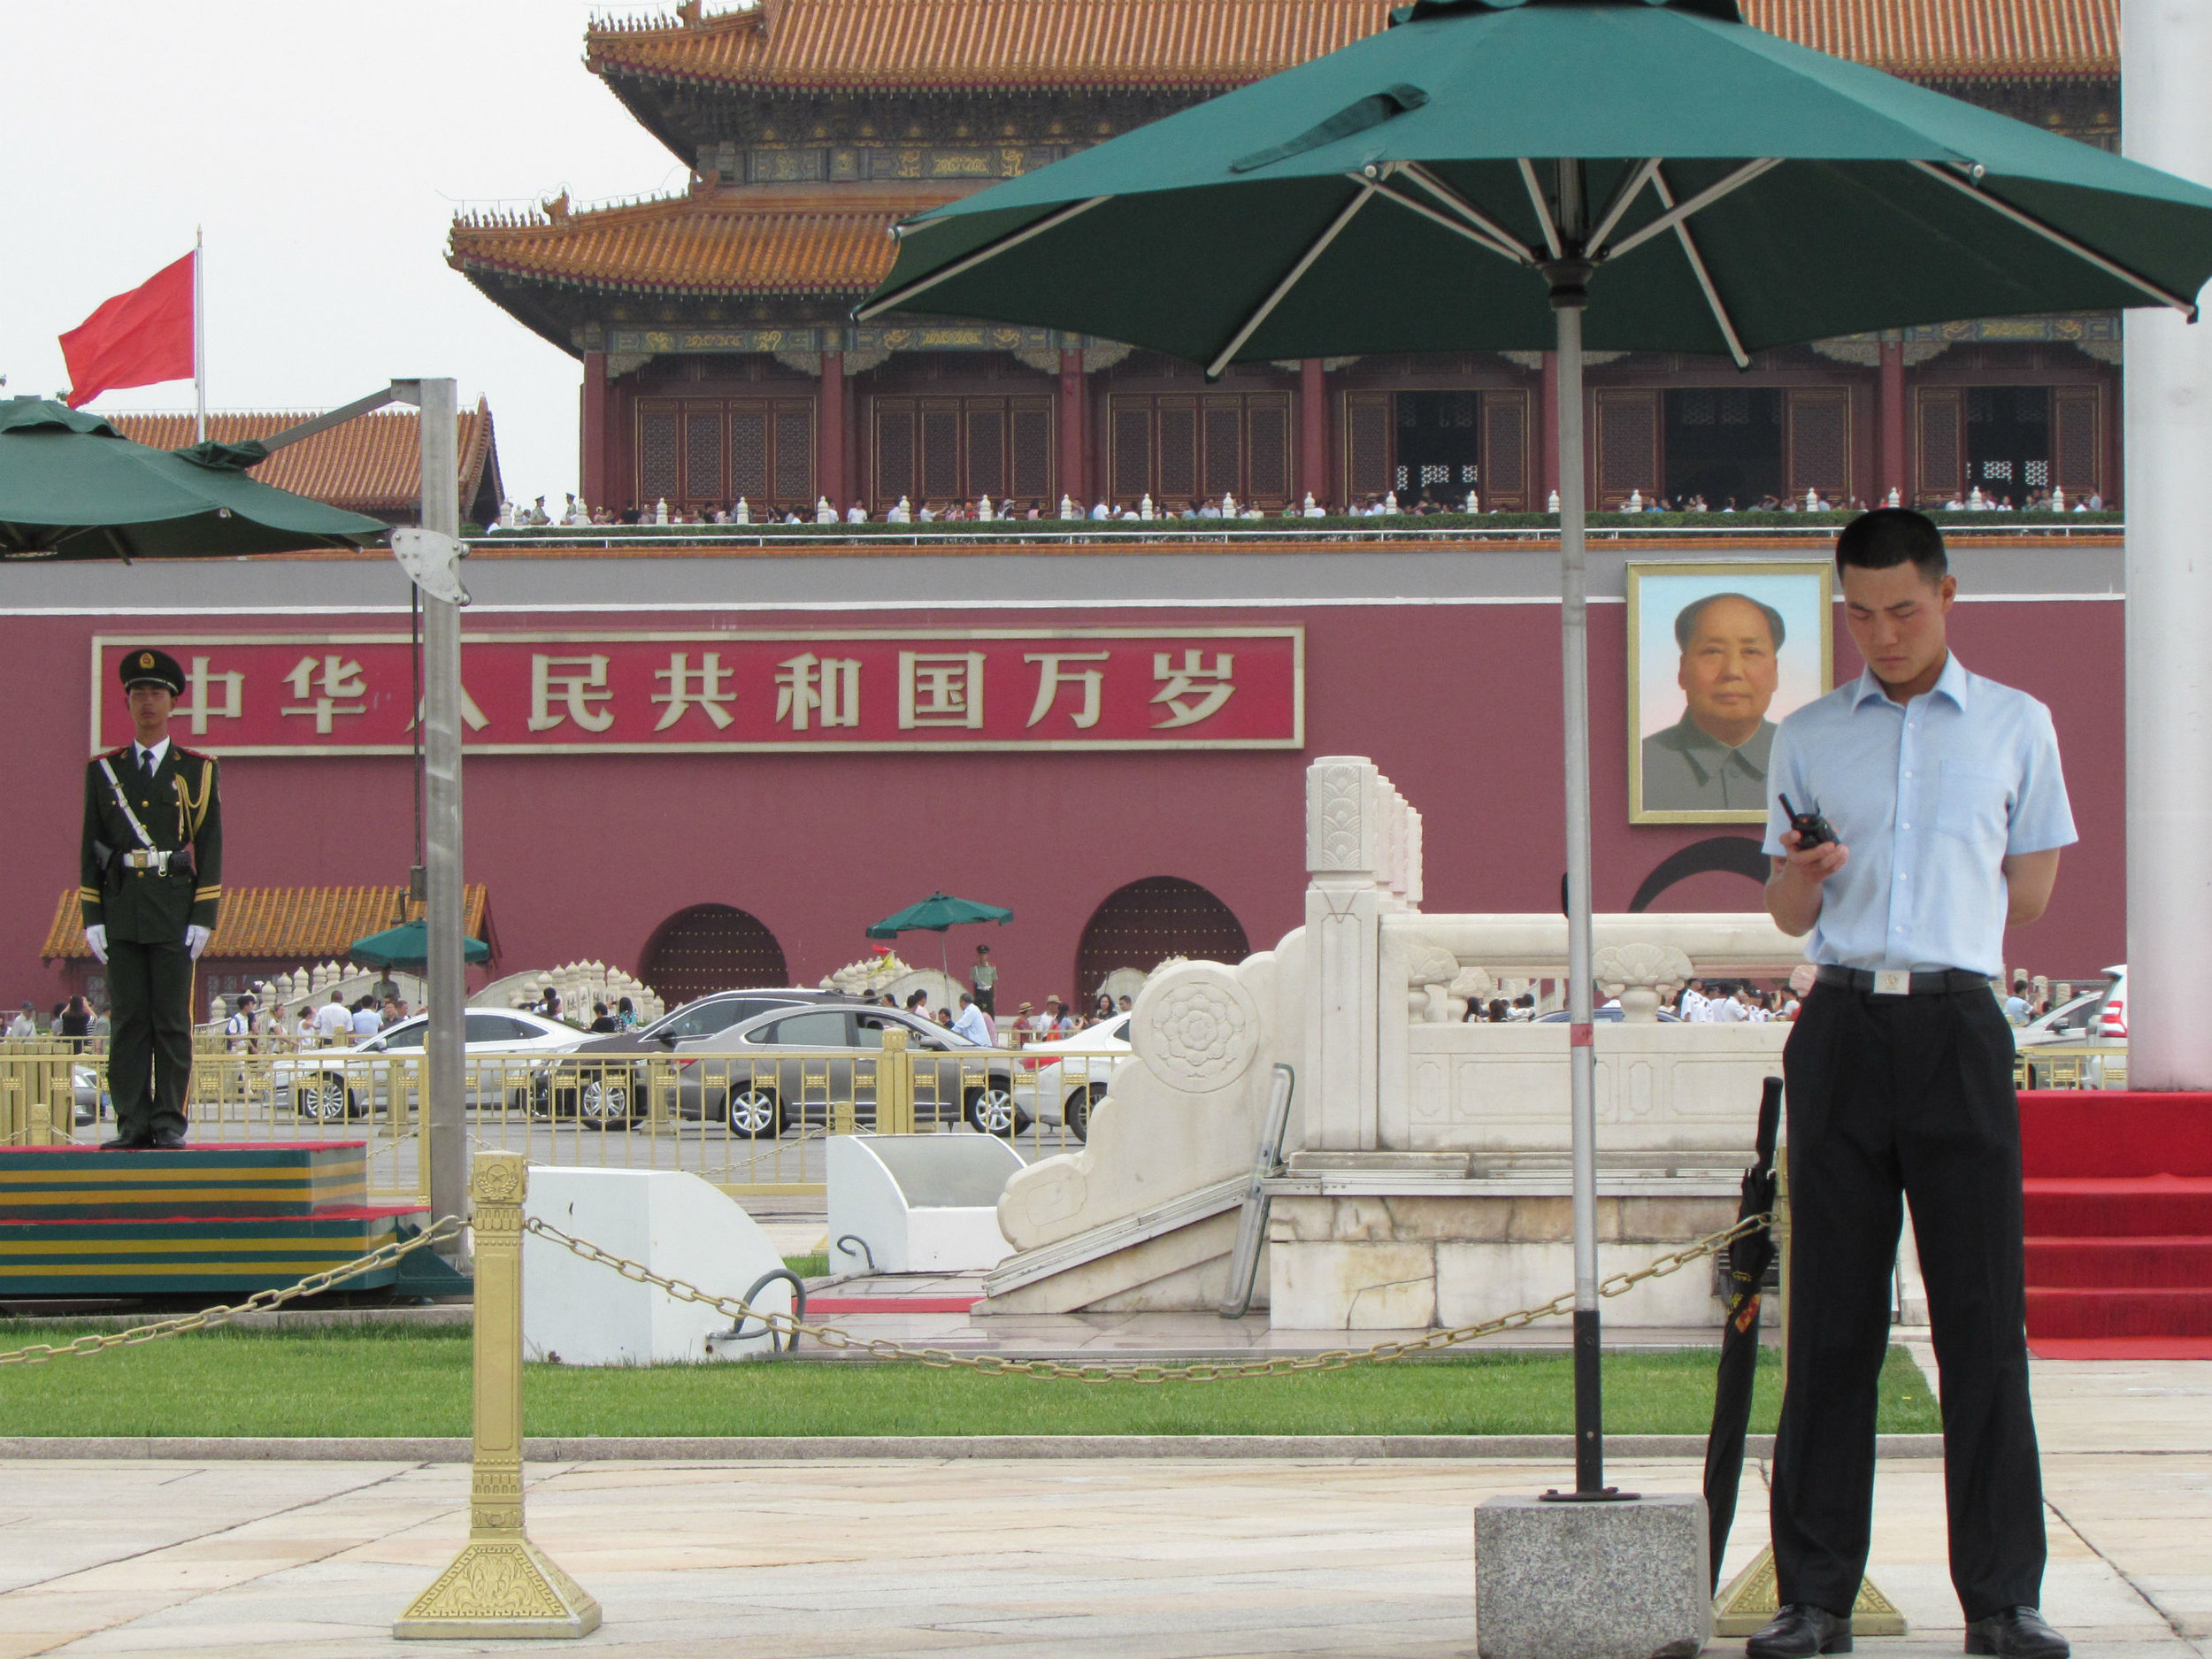 Security personel on Tiananmen Square